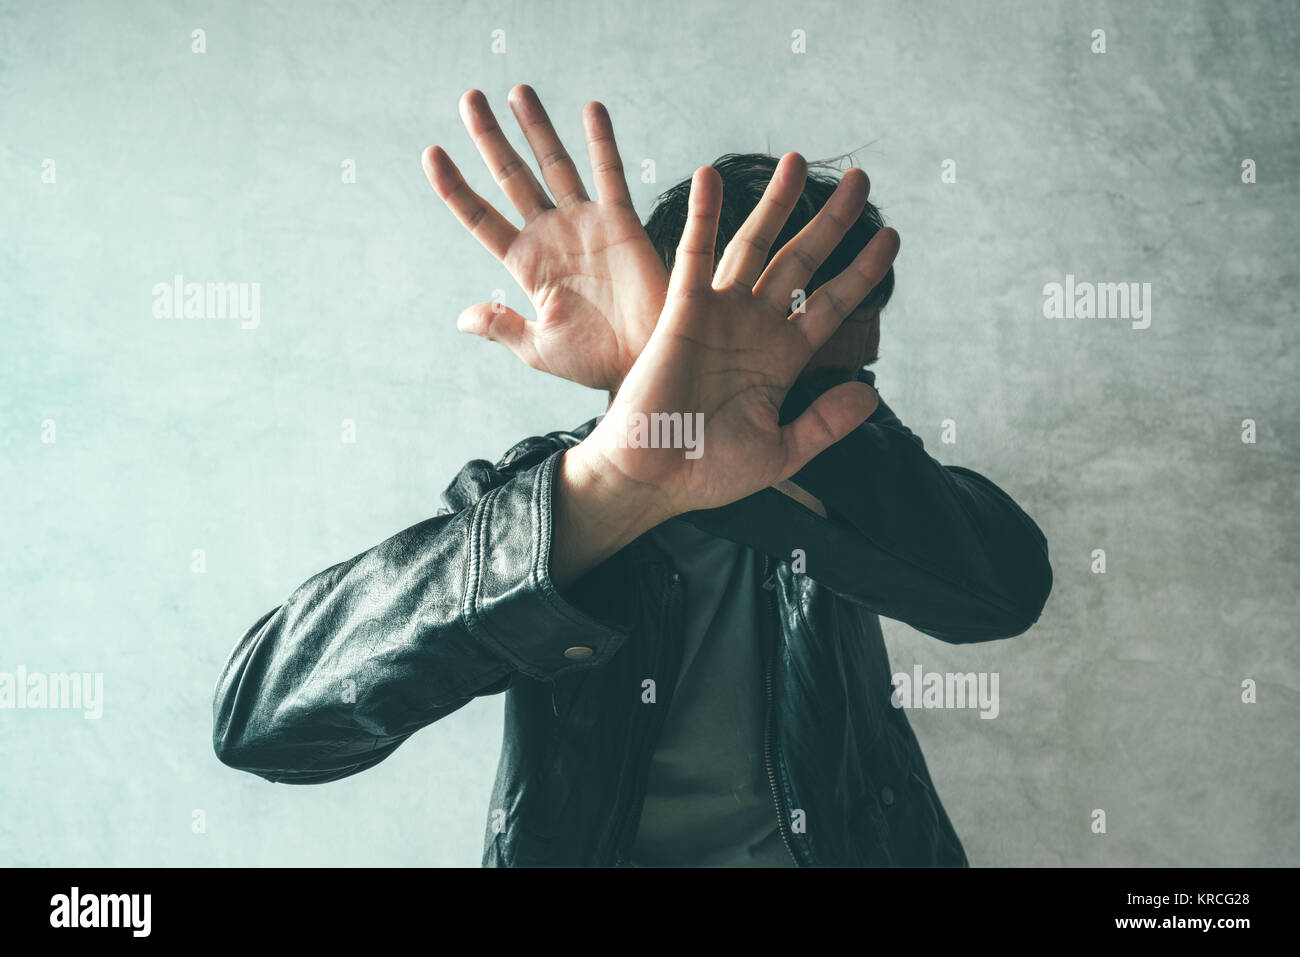 Male protecting face from violent attack. Adult caucasian man covering face and head to stop punches in a fight - Stock Image